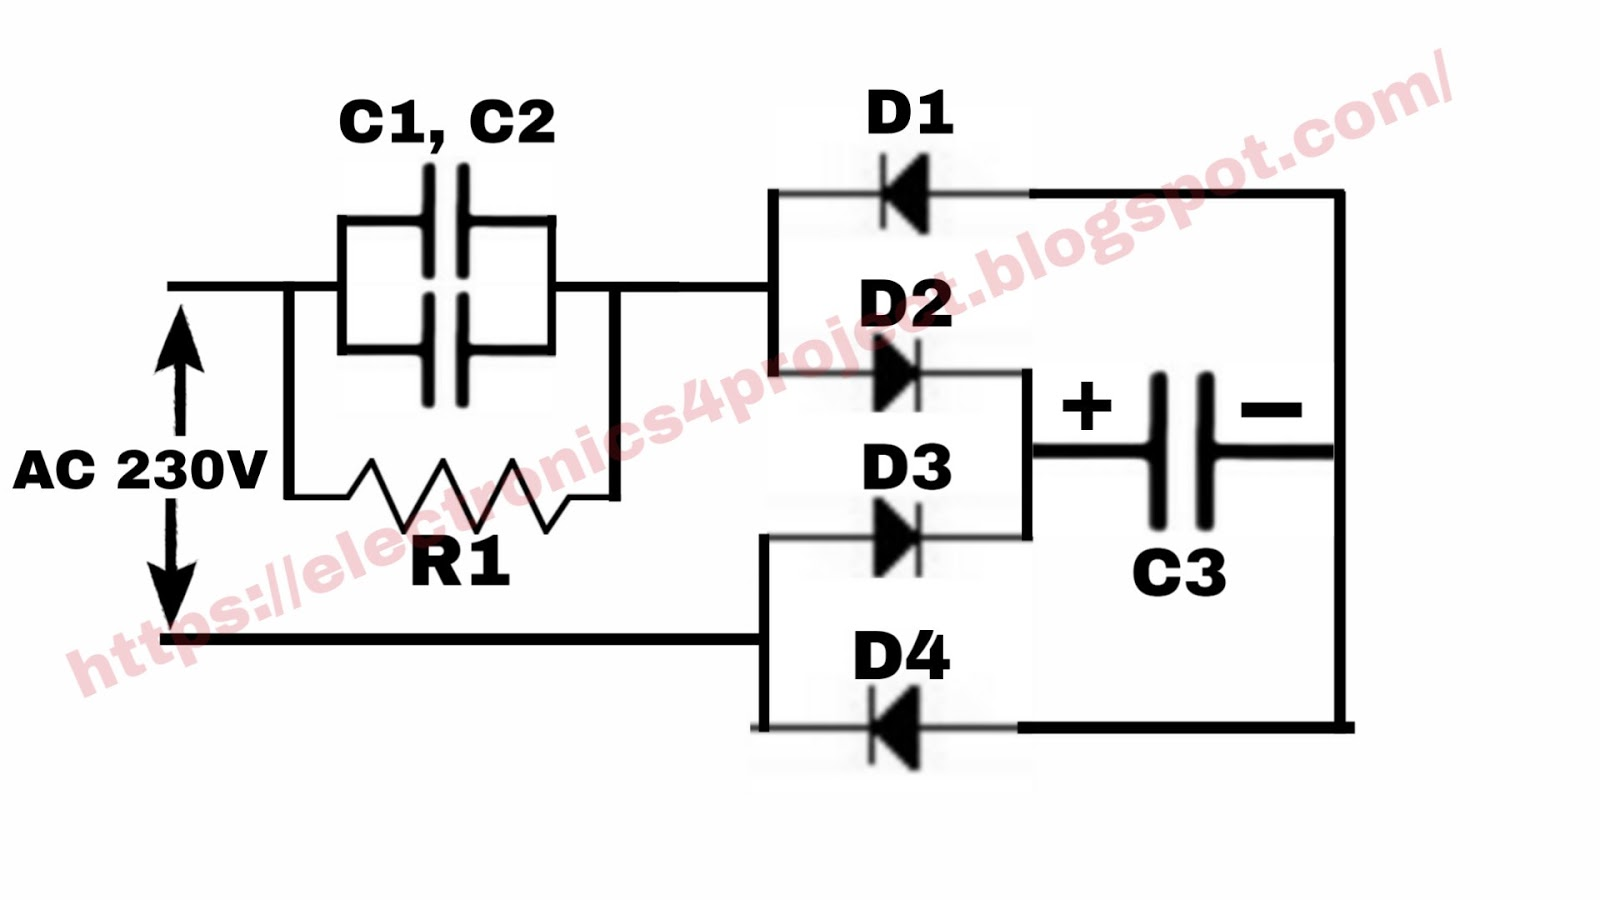 Electronics project: LED bulb driver circuit diagram